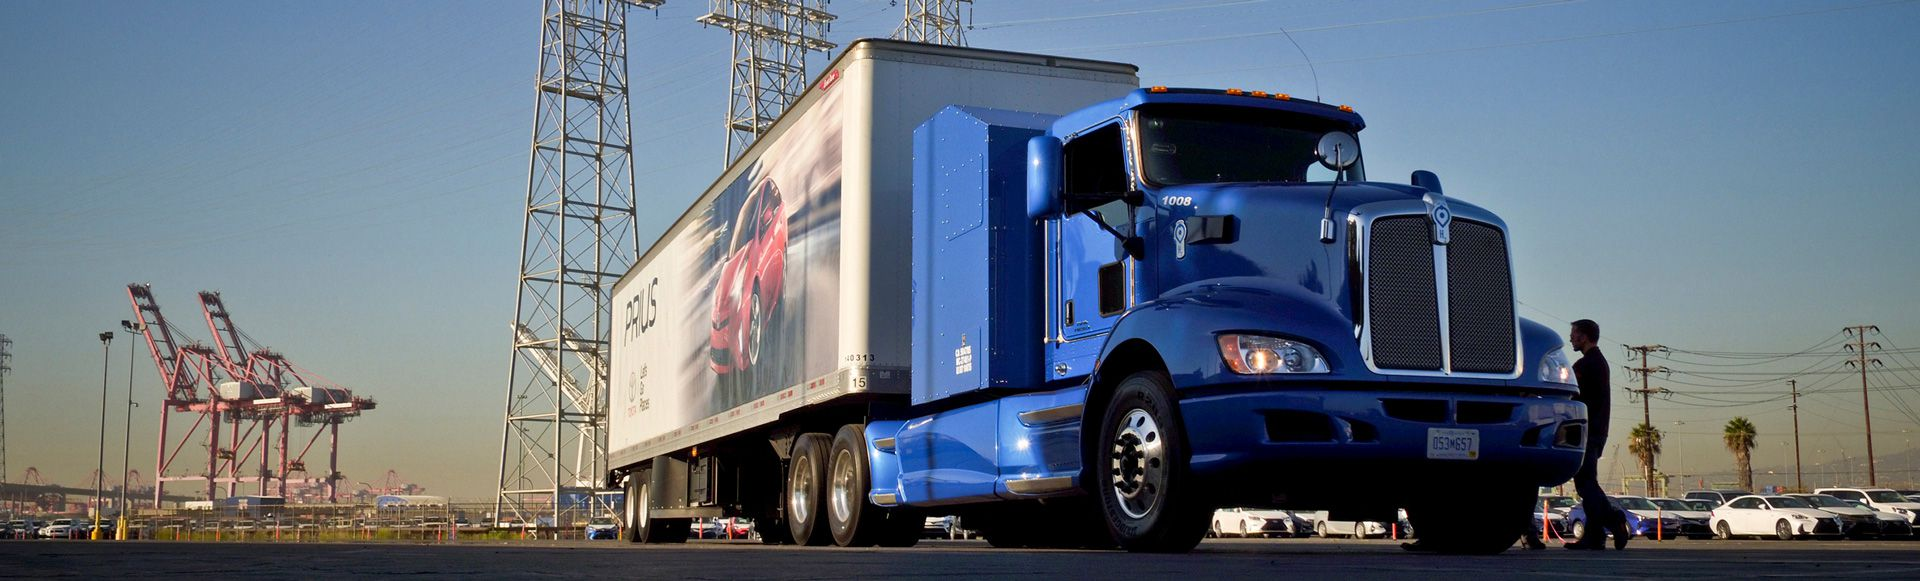 Shell and Toyota move forward with hydrogen facility for freight at Port of Long Beach